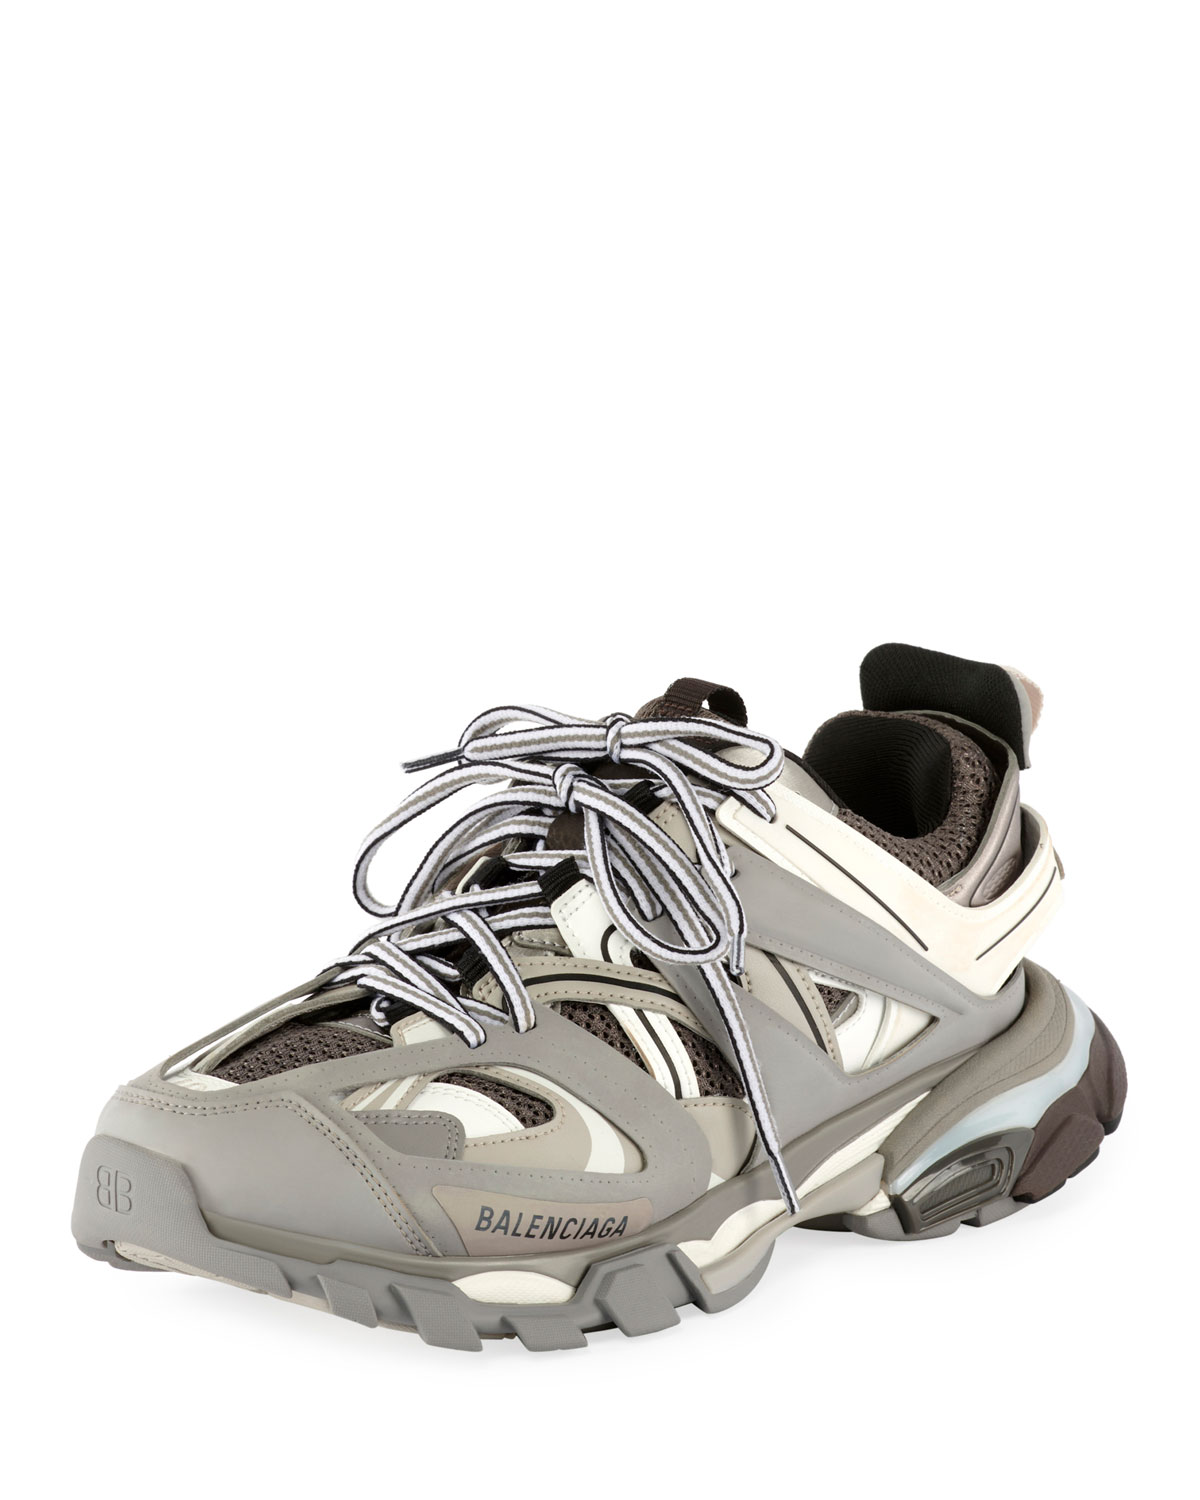 179dcbedd30ff Balenciaga Women s Track Mixed-Media Sneakers